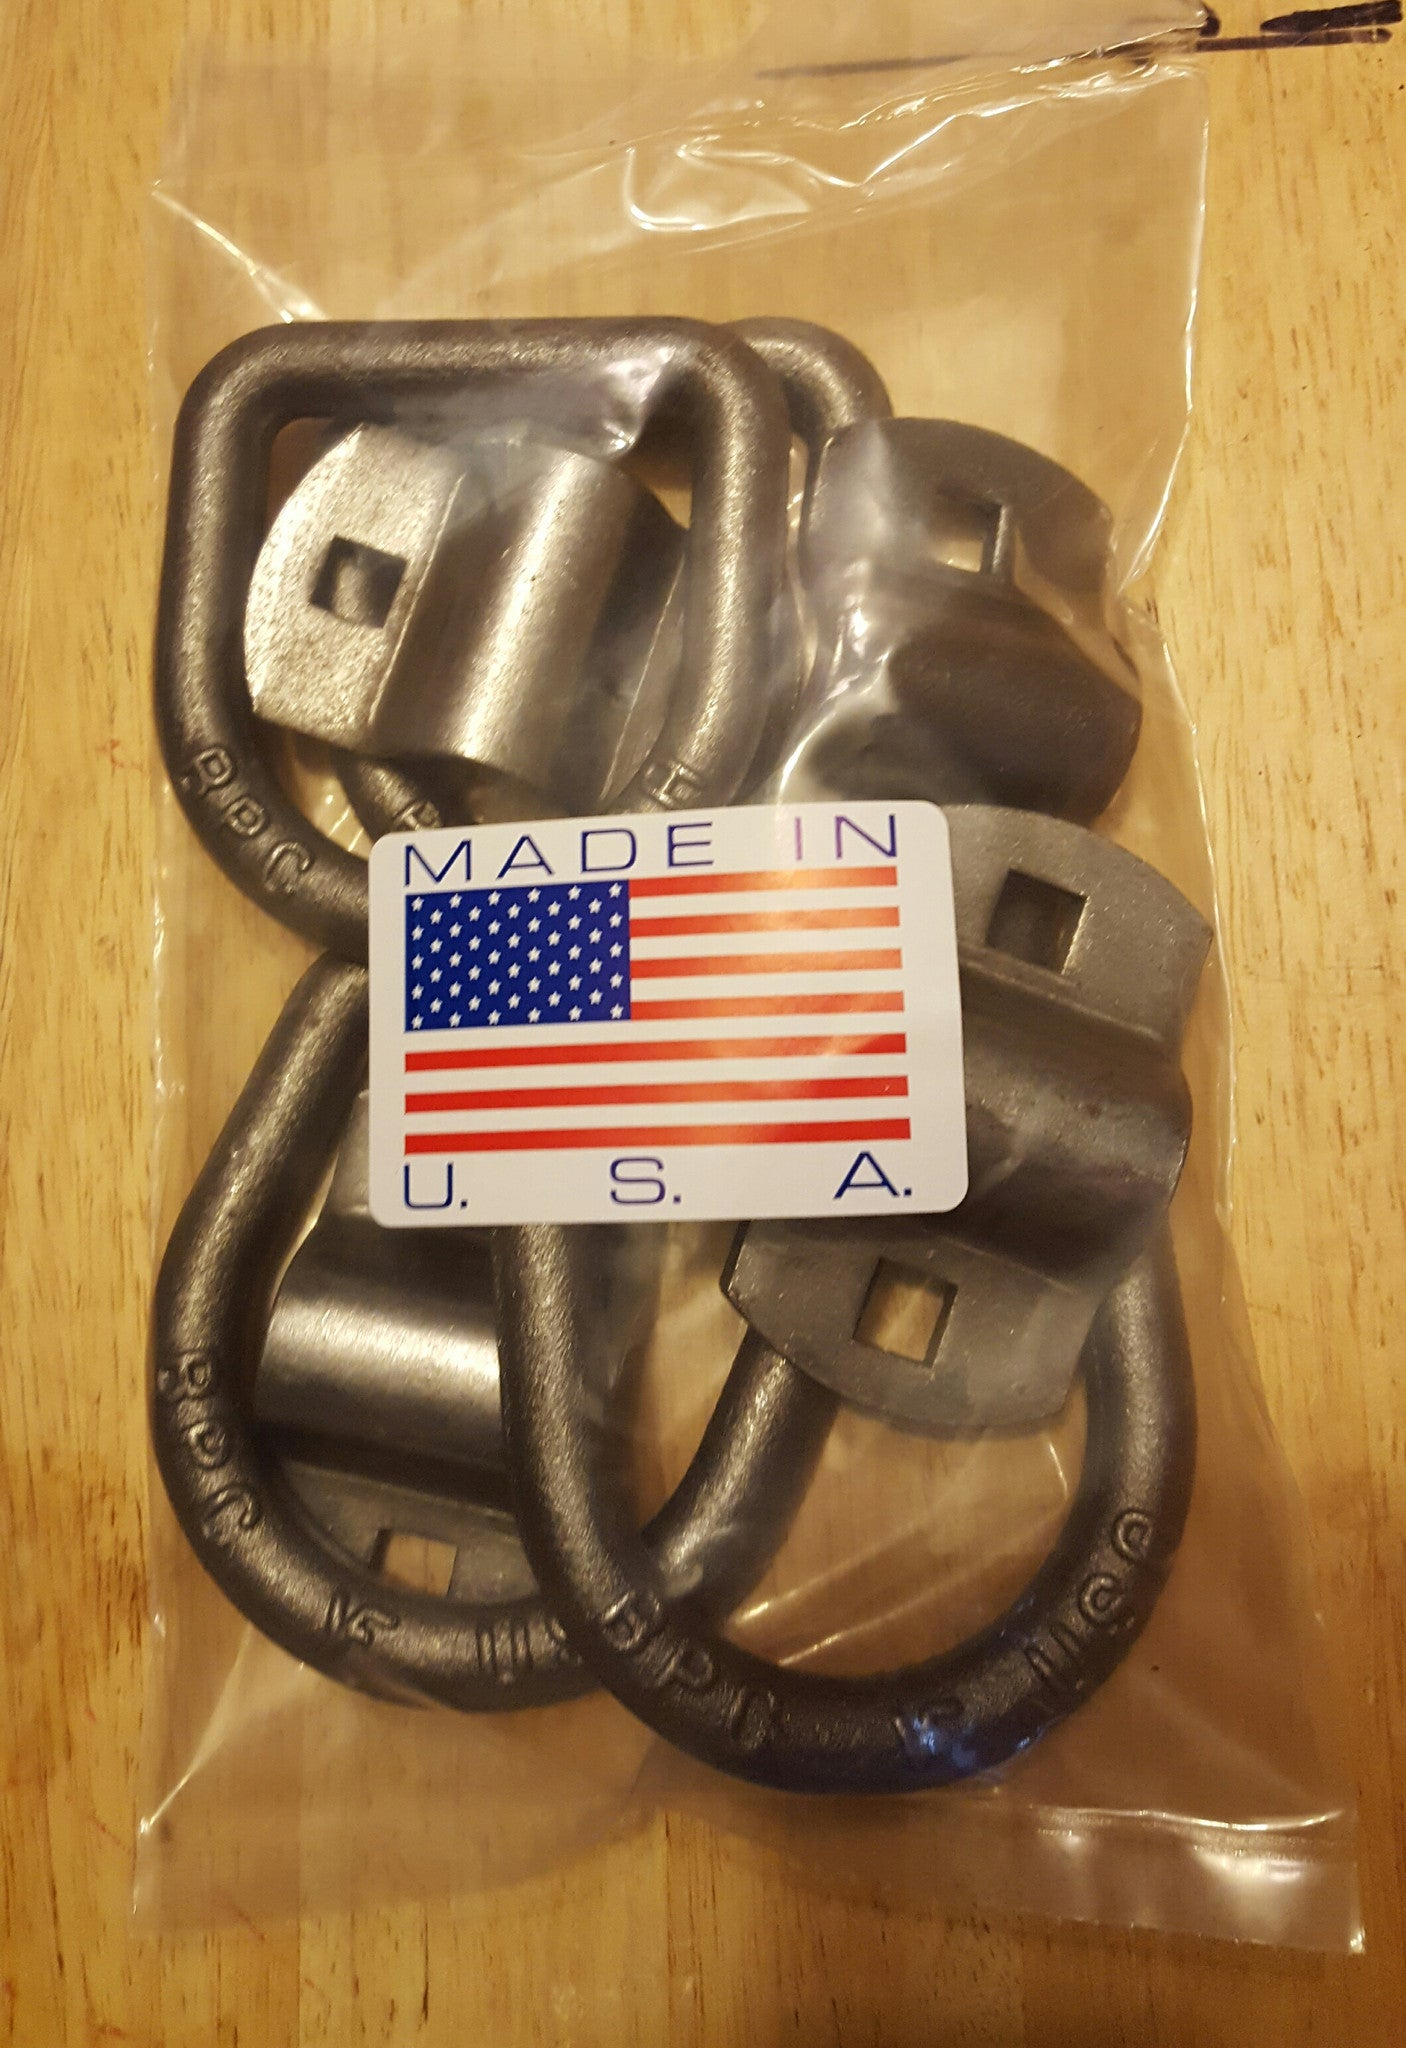 Why Made in USA Ratchet Straps & Tie Downs, Chains & Chain Binders Are Important